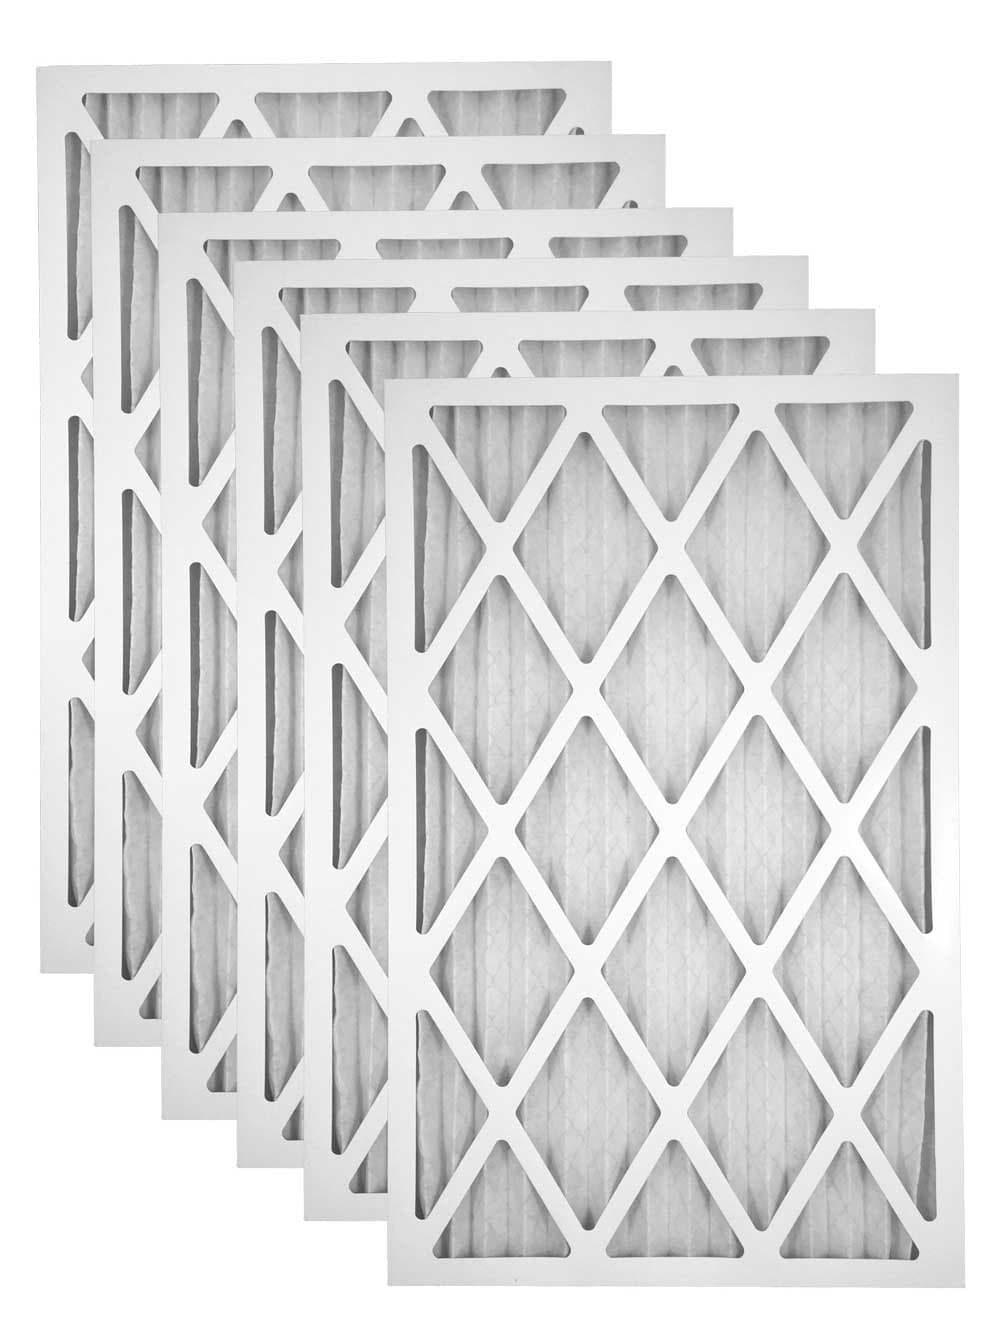 16x24x1 Merv 8 Pleated AC Furnace Filter - Case of 6